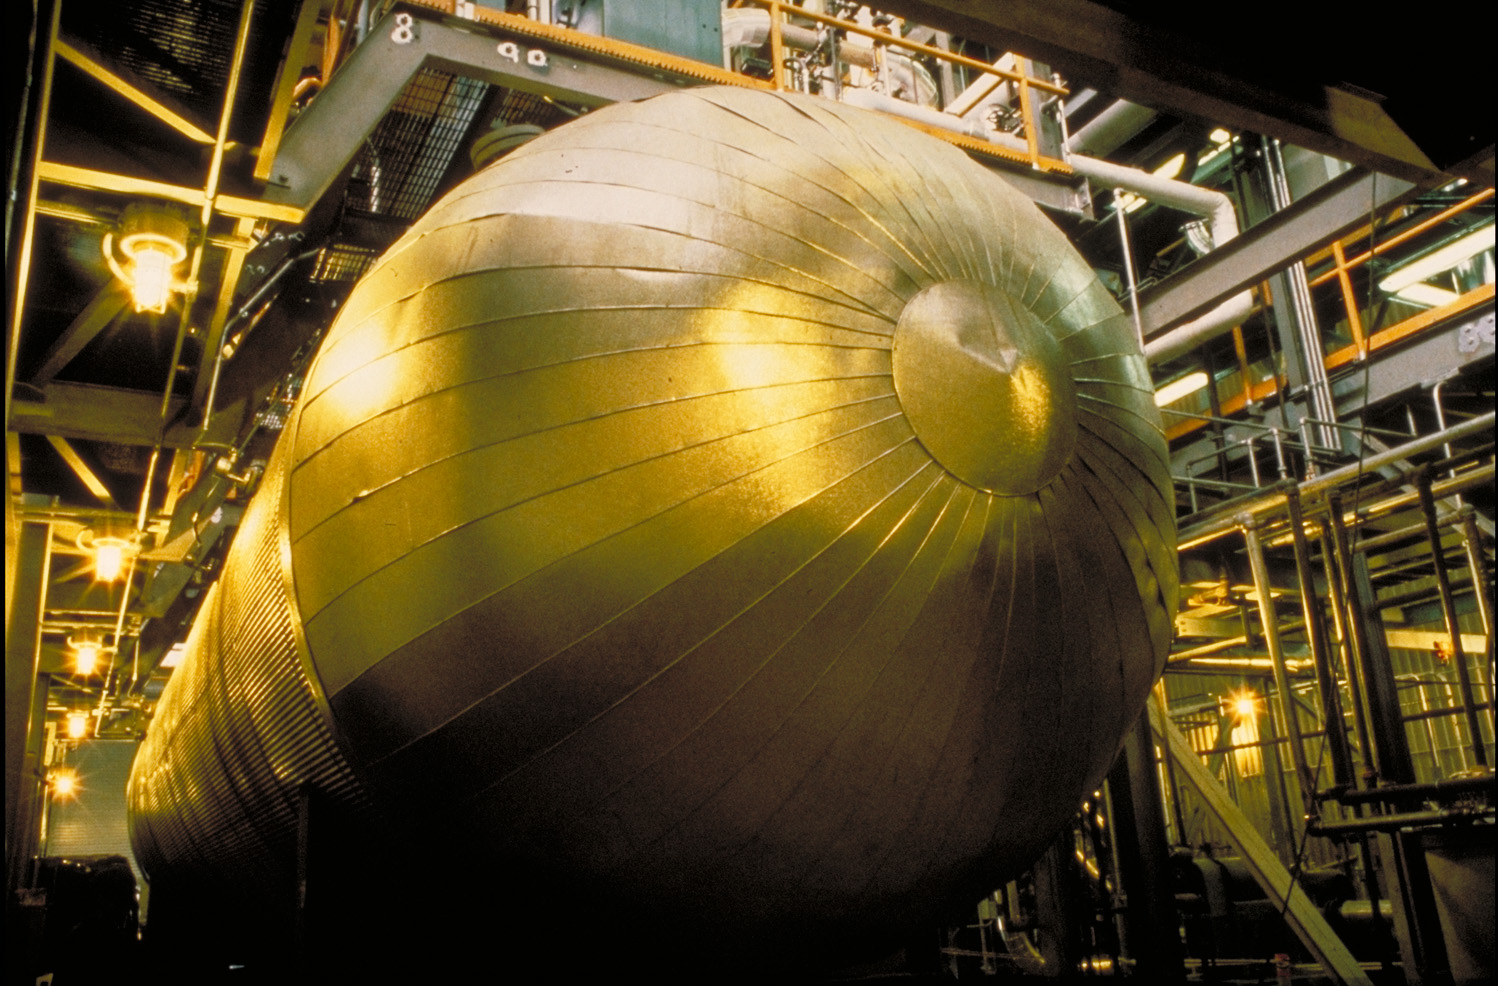 The autoclave at American Barrick Resources' Mercur gold mine in Utah in 1988. Credit: Barrick Gold.